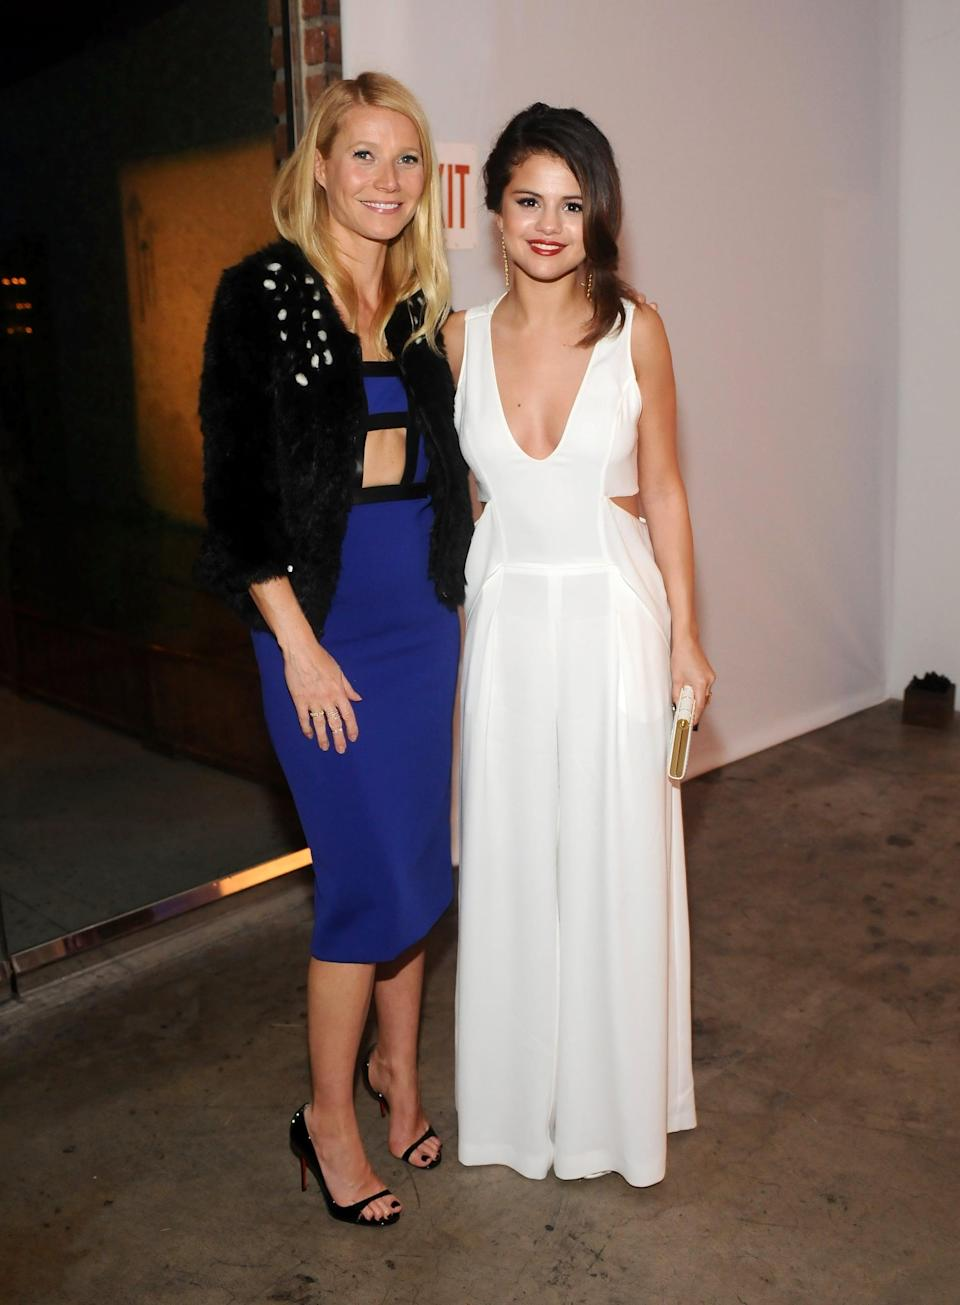 """<p>Selena partied with the likes of <a class=""""link rapid-noclick-resp"""" href=""""https://www.popsugar.com/Gwyneth-Paltrow"""" rel=""""nofollow noopener"""" target=""""_blank"""" data-ylk=""""slk:Gwyneth Paltrow"""">Gwyneth Paltrow</a> and <a class=""""link rapid-noclick-resp"""" href=""""https://www.popsugar.com/Reese-Witherspoon"""" rel=""""nofollow noopener"""" target=""""_blank"""" data-ylk=""""slk:Reese Witherspoon"""">Reese Witherspoon</a> at the Stand Up to Cancer benefit event in LA.</p>"""